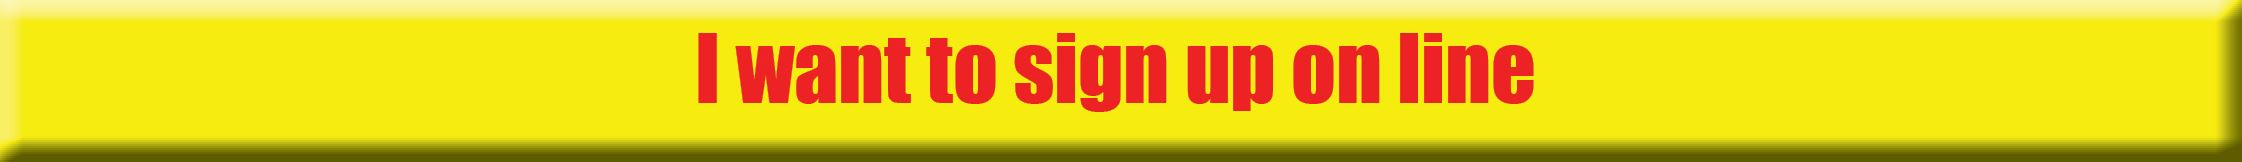 sign up on line button